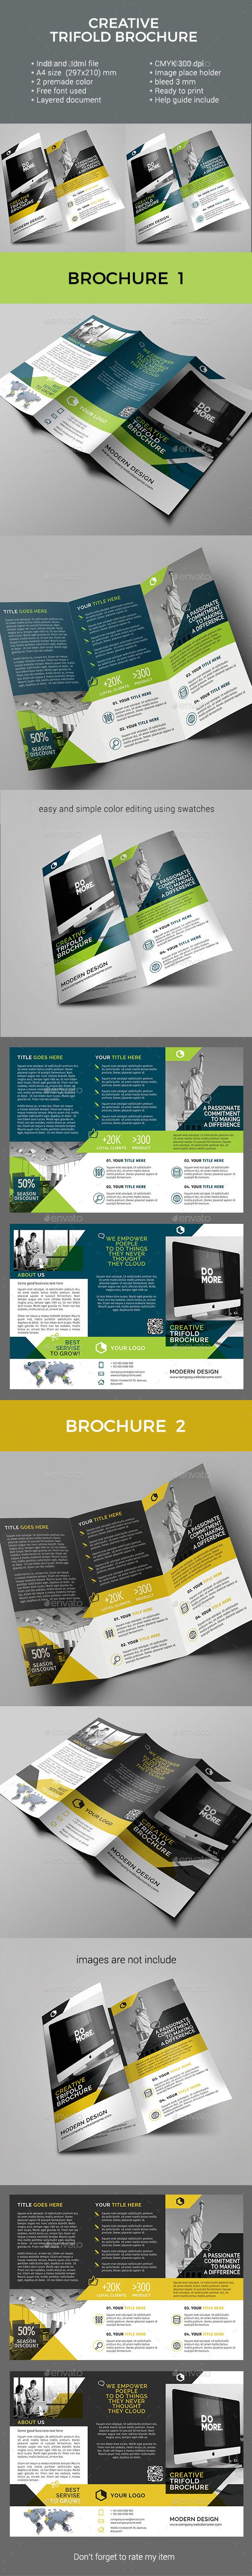 #Trifold #Brochure - Corporate Brochures Download here: https://graphicriver.net/item/trifold-brochure/19739446?ref=alena994